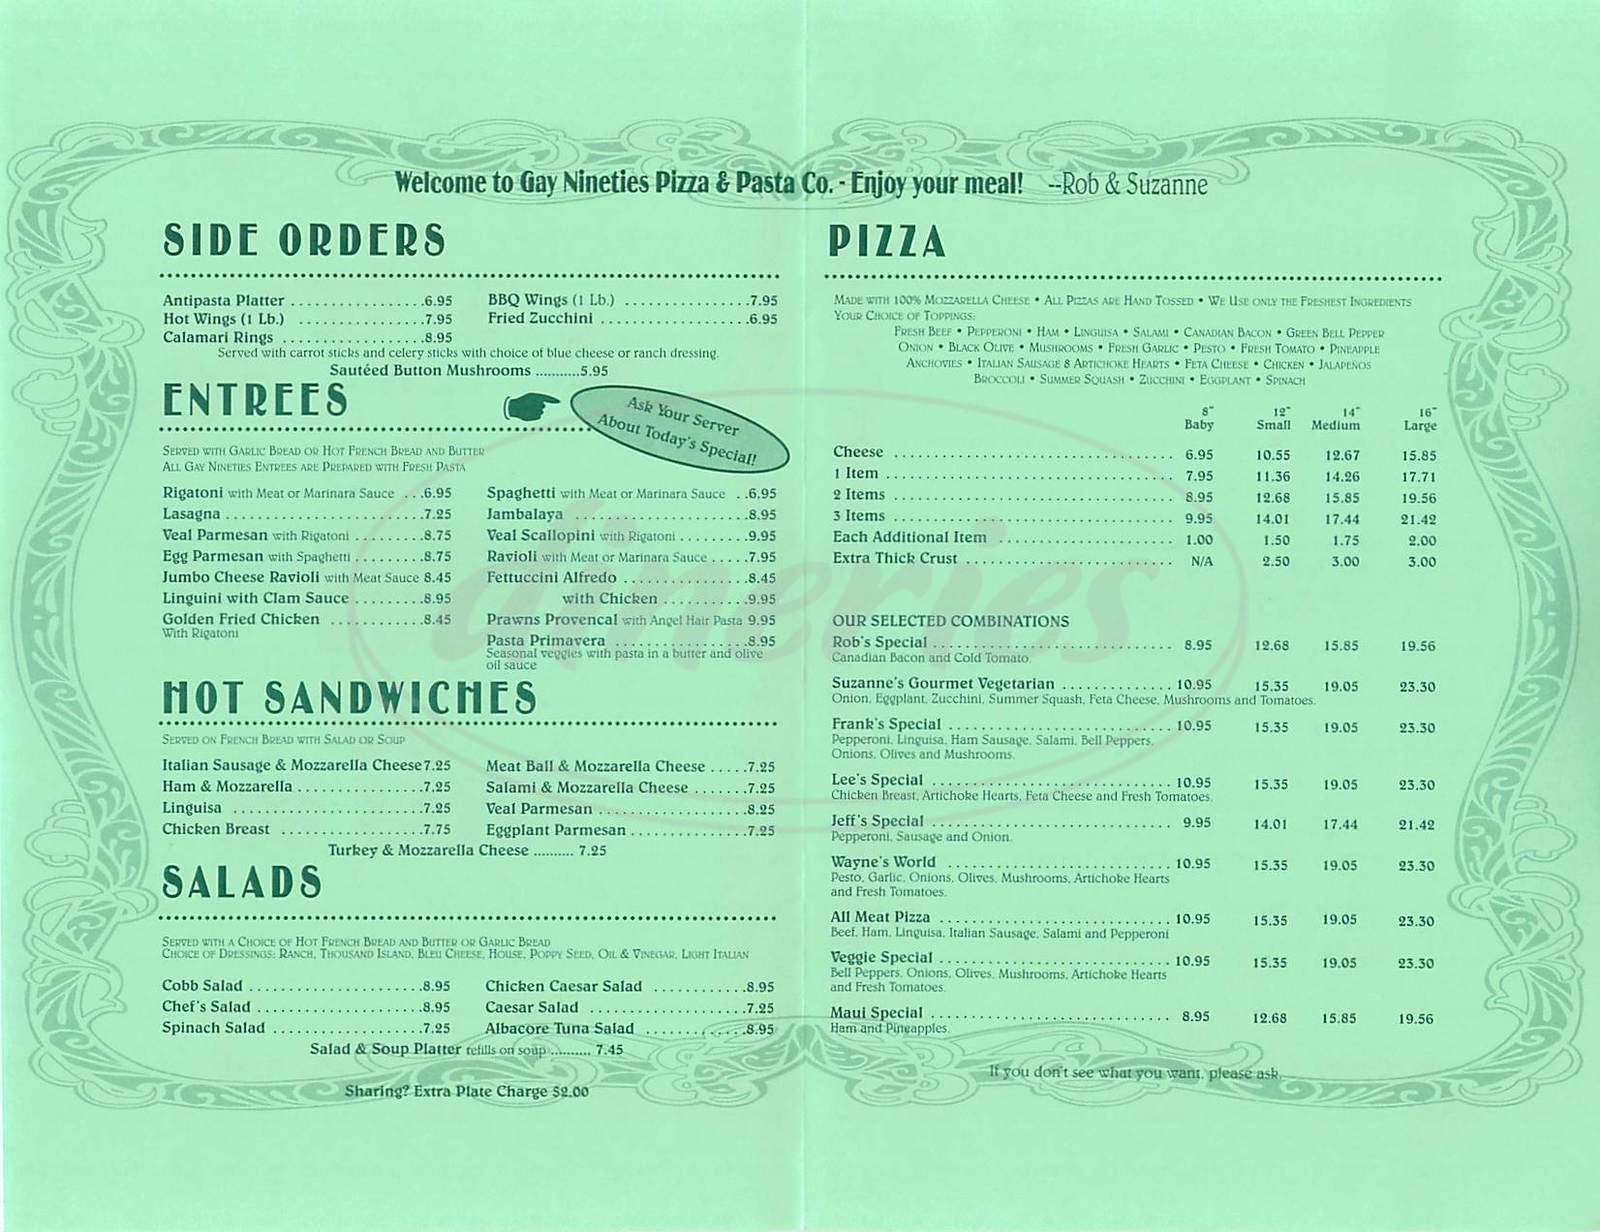 menu for Gay Nineties Pizza & Pasta